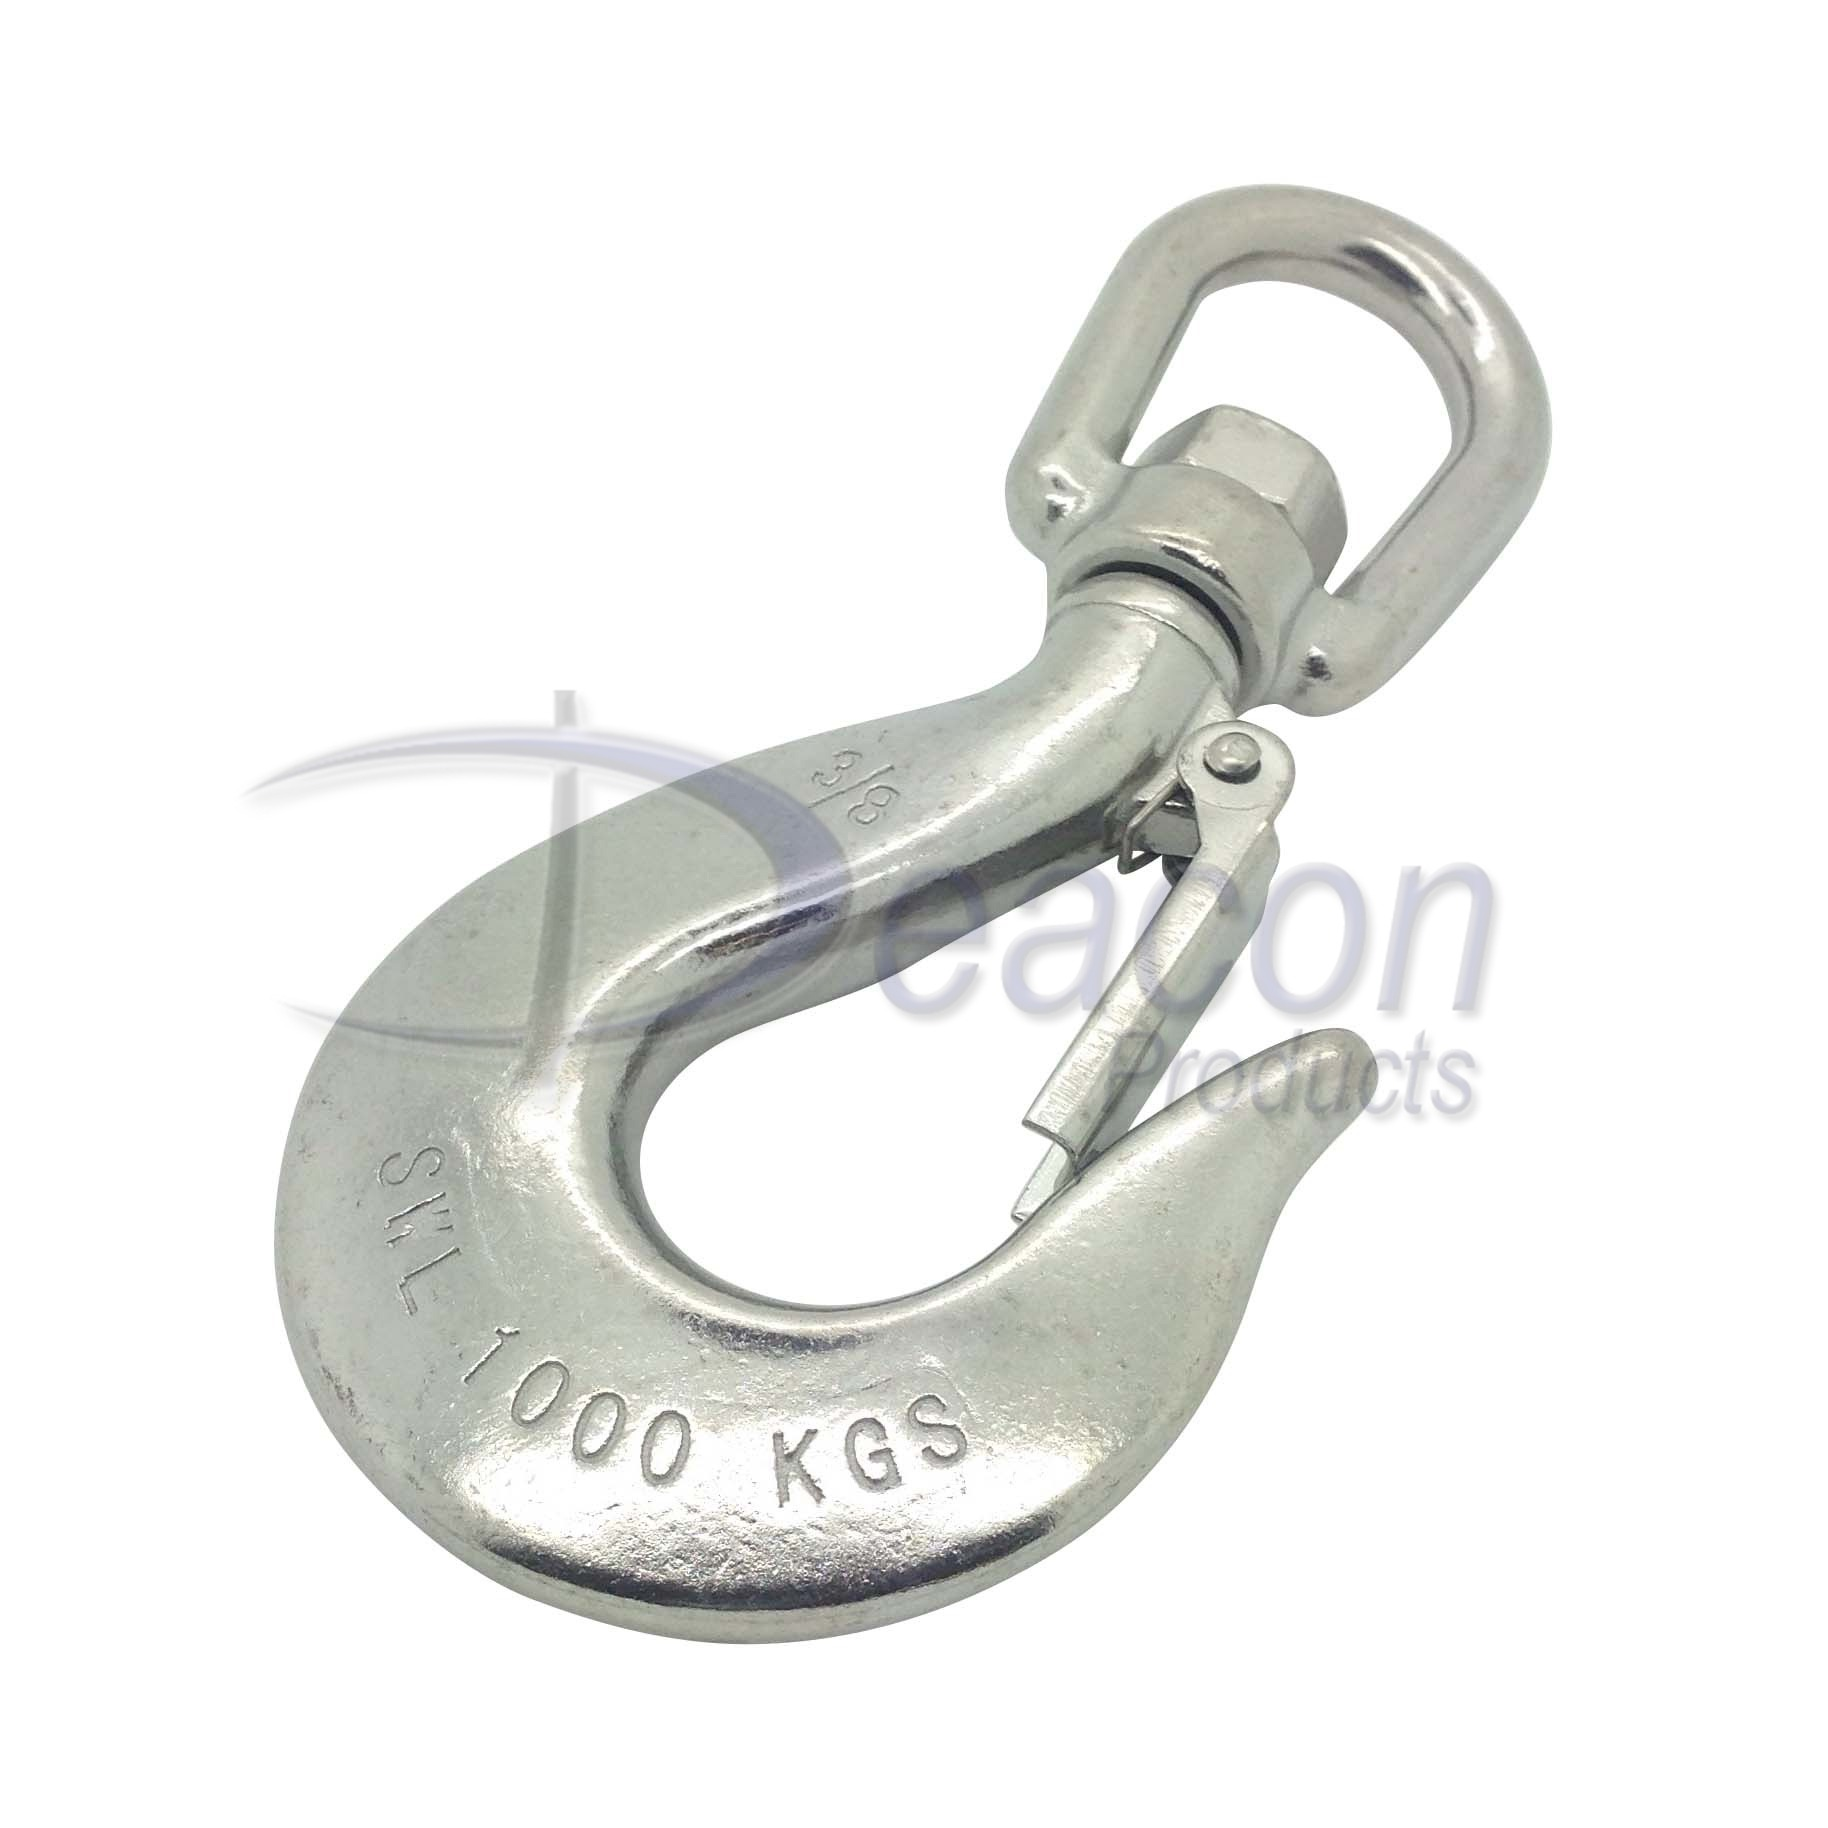 stainless-steel-swivel-hook-safety-catch